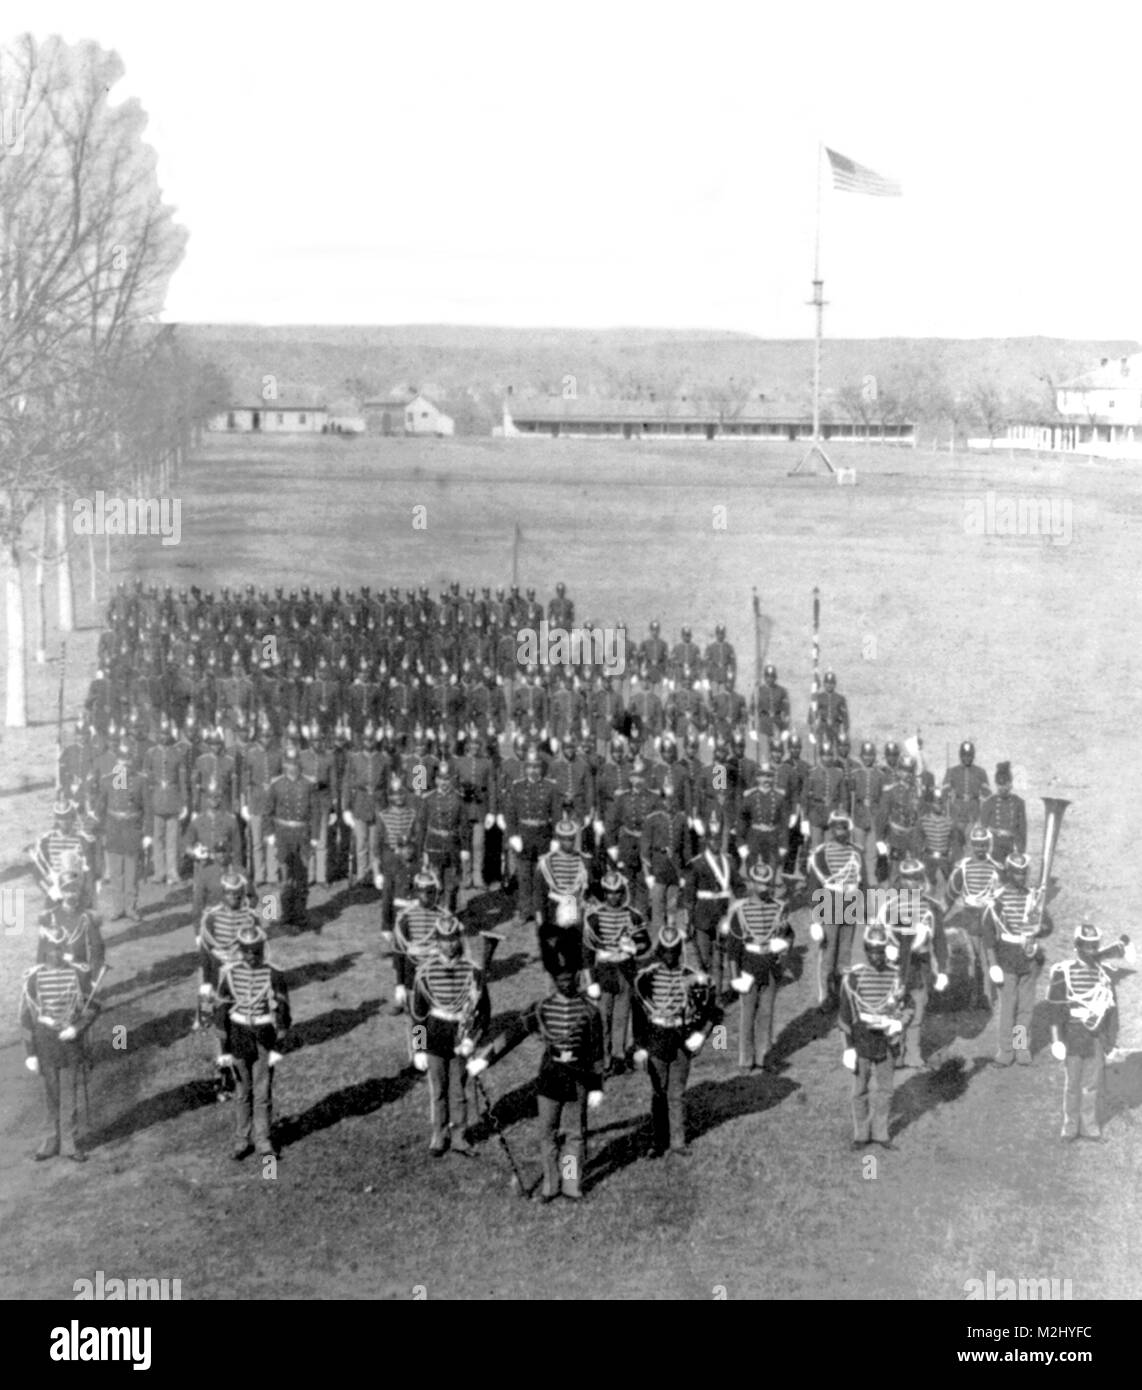 Buffalo Soldiers, 25th Infantry, Dakota Territory, 1882 - Stock Image